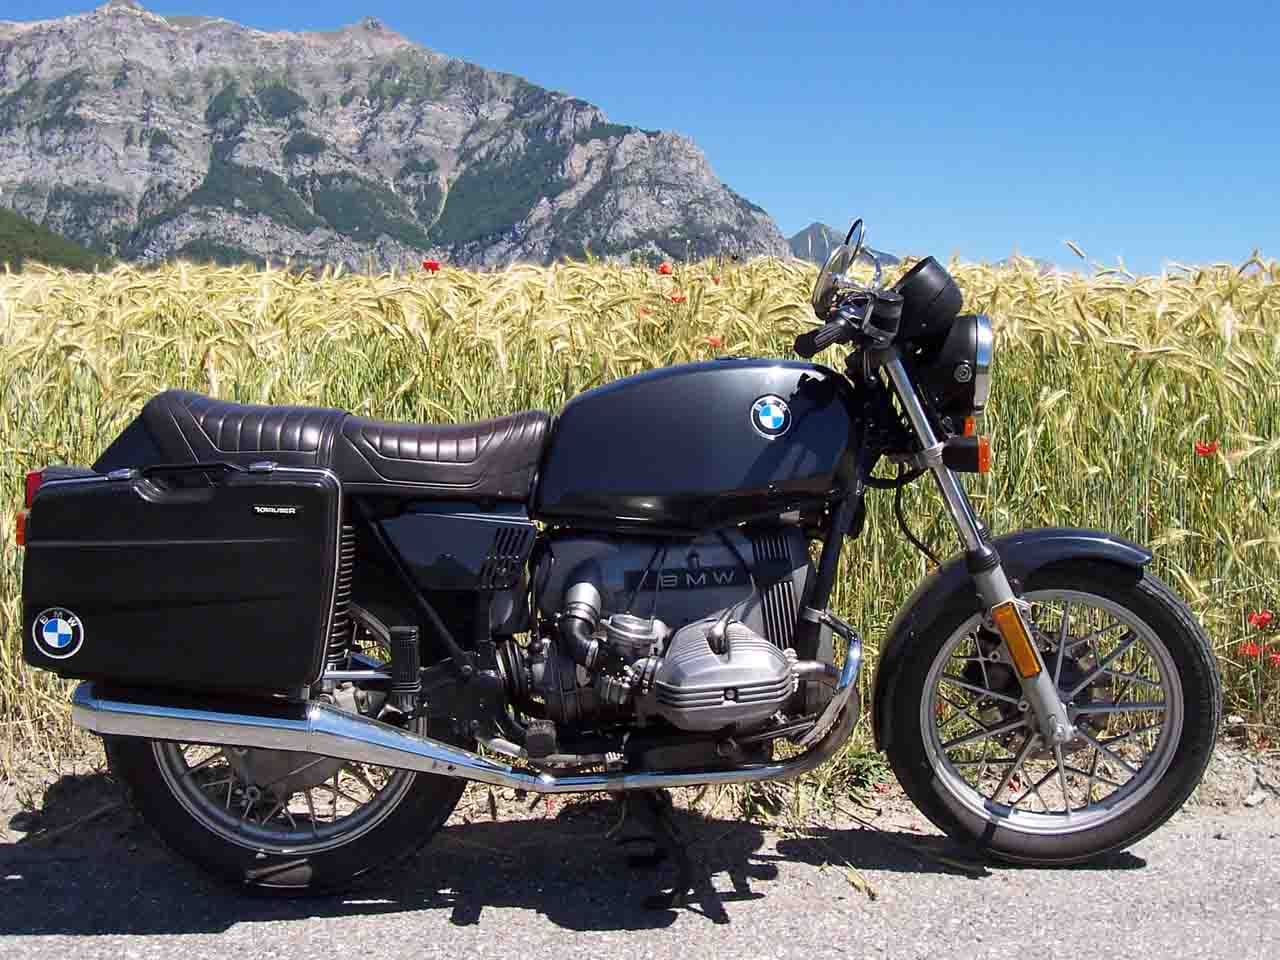 BMW R65GS 1987 images #4638